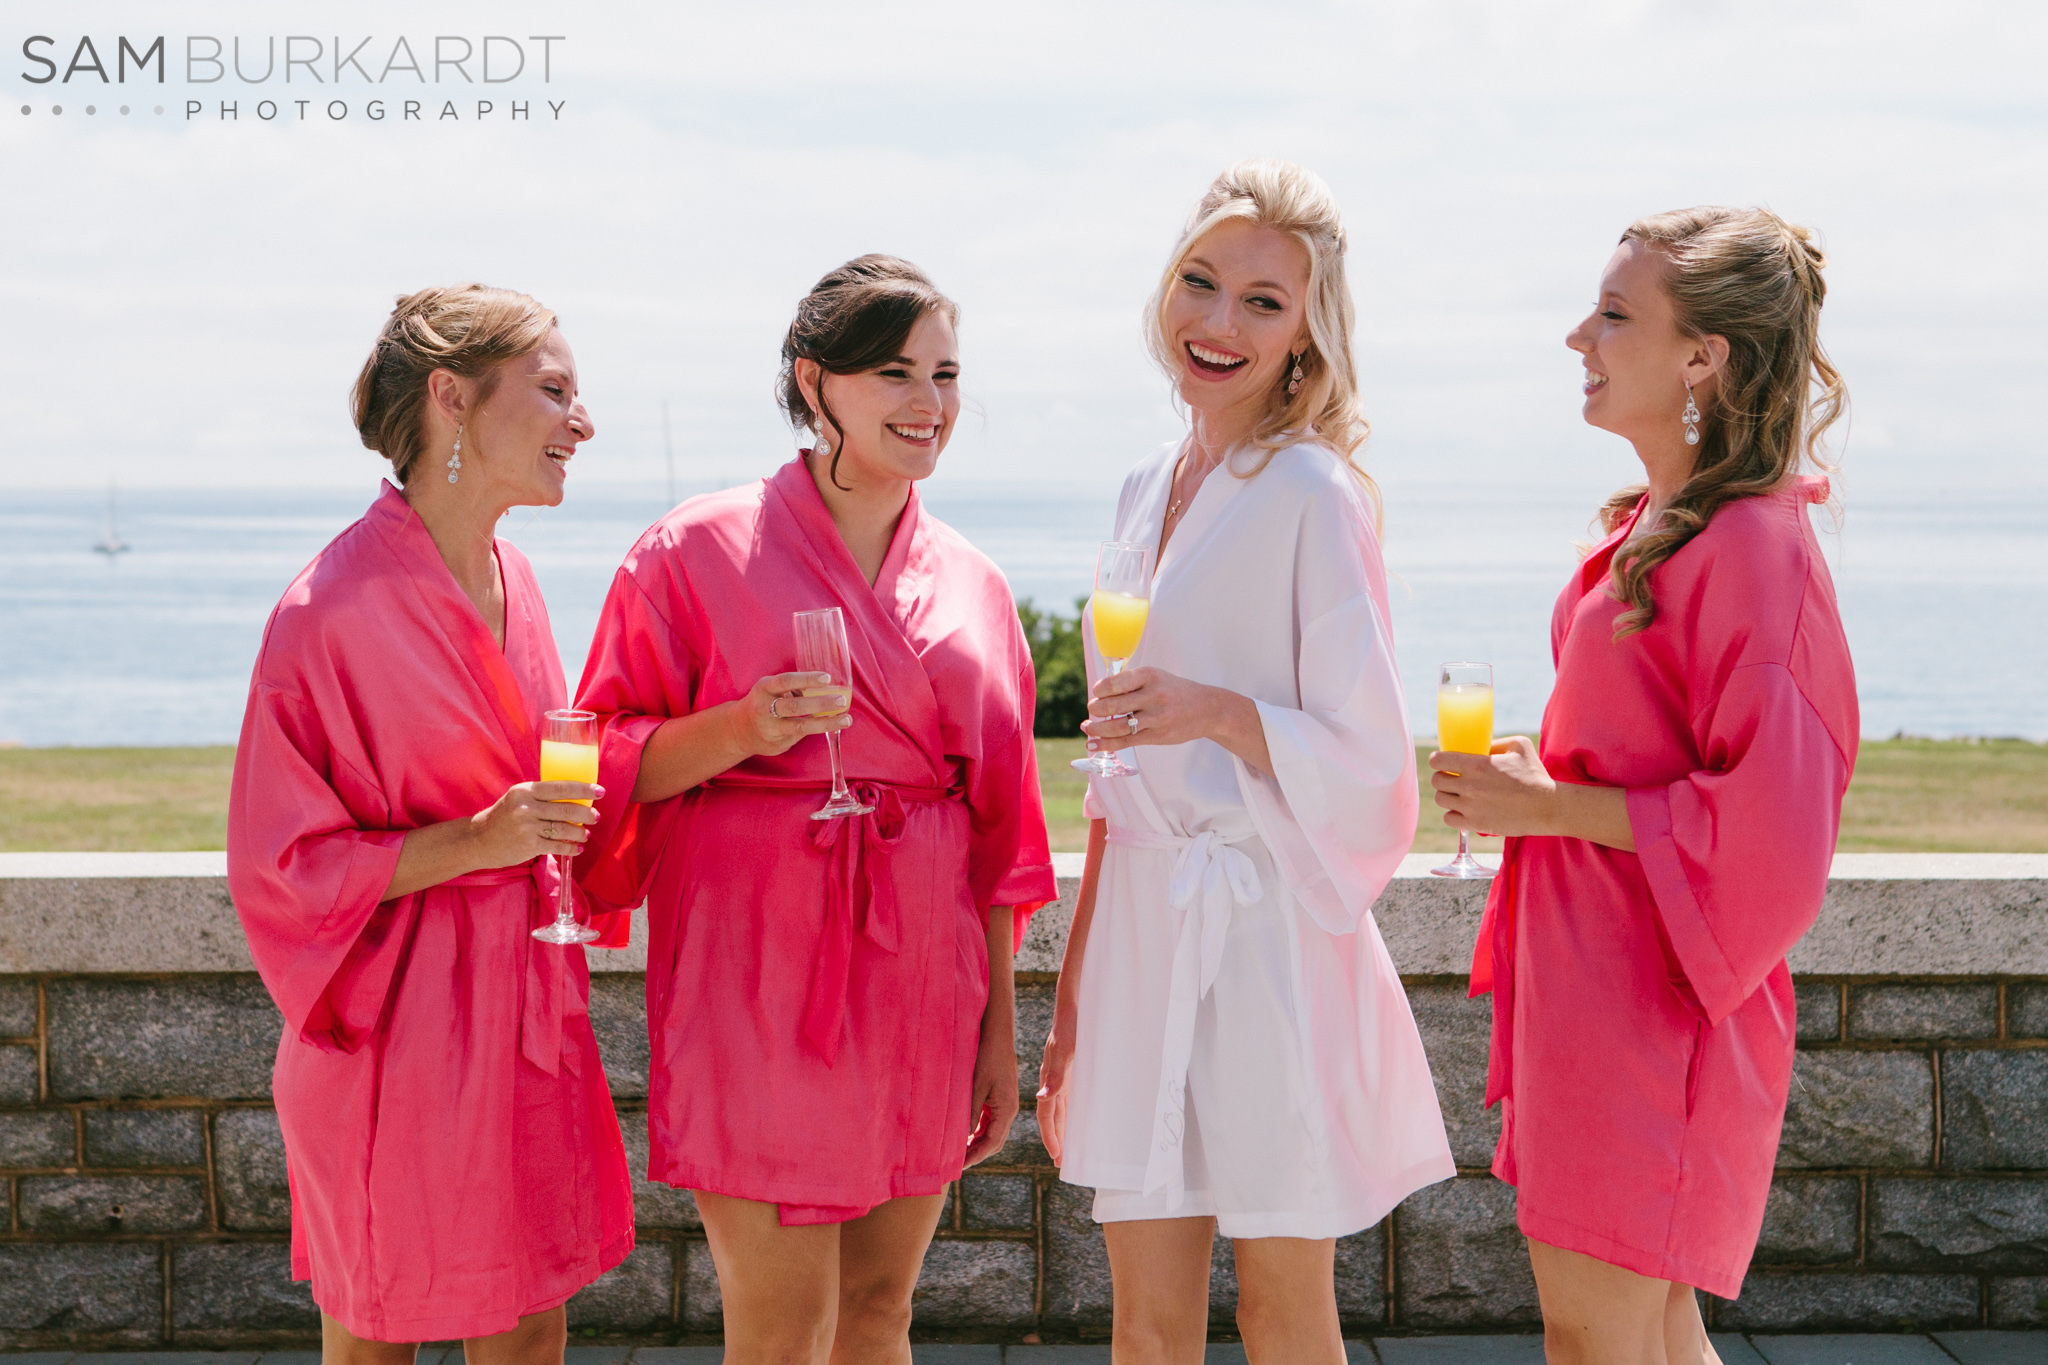 samburkardt_platz_moore_connecticut_branford_house_long_island_sound_august_photography_wedding_glamour_pink_0011.jpg